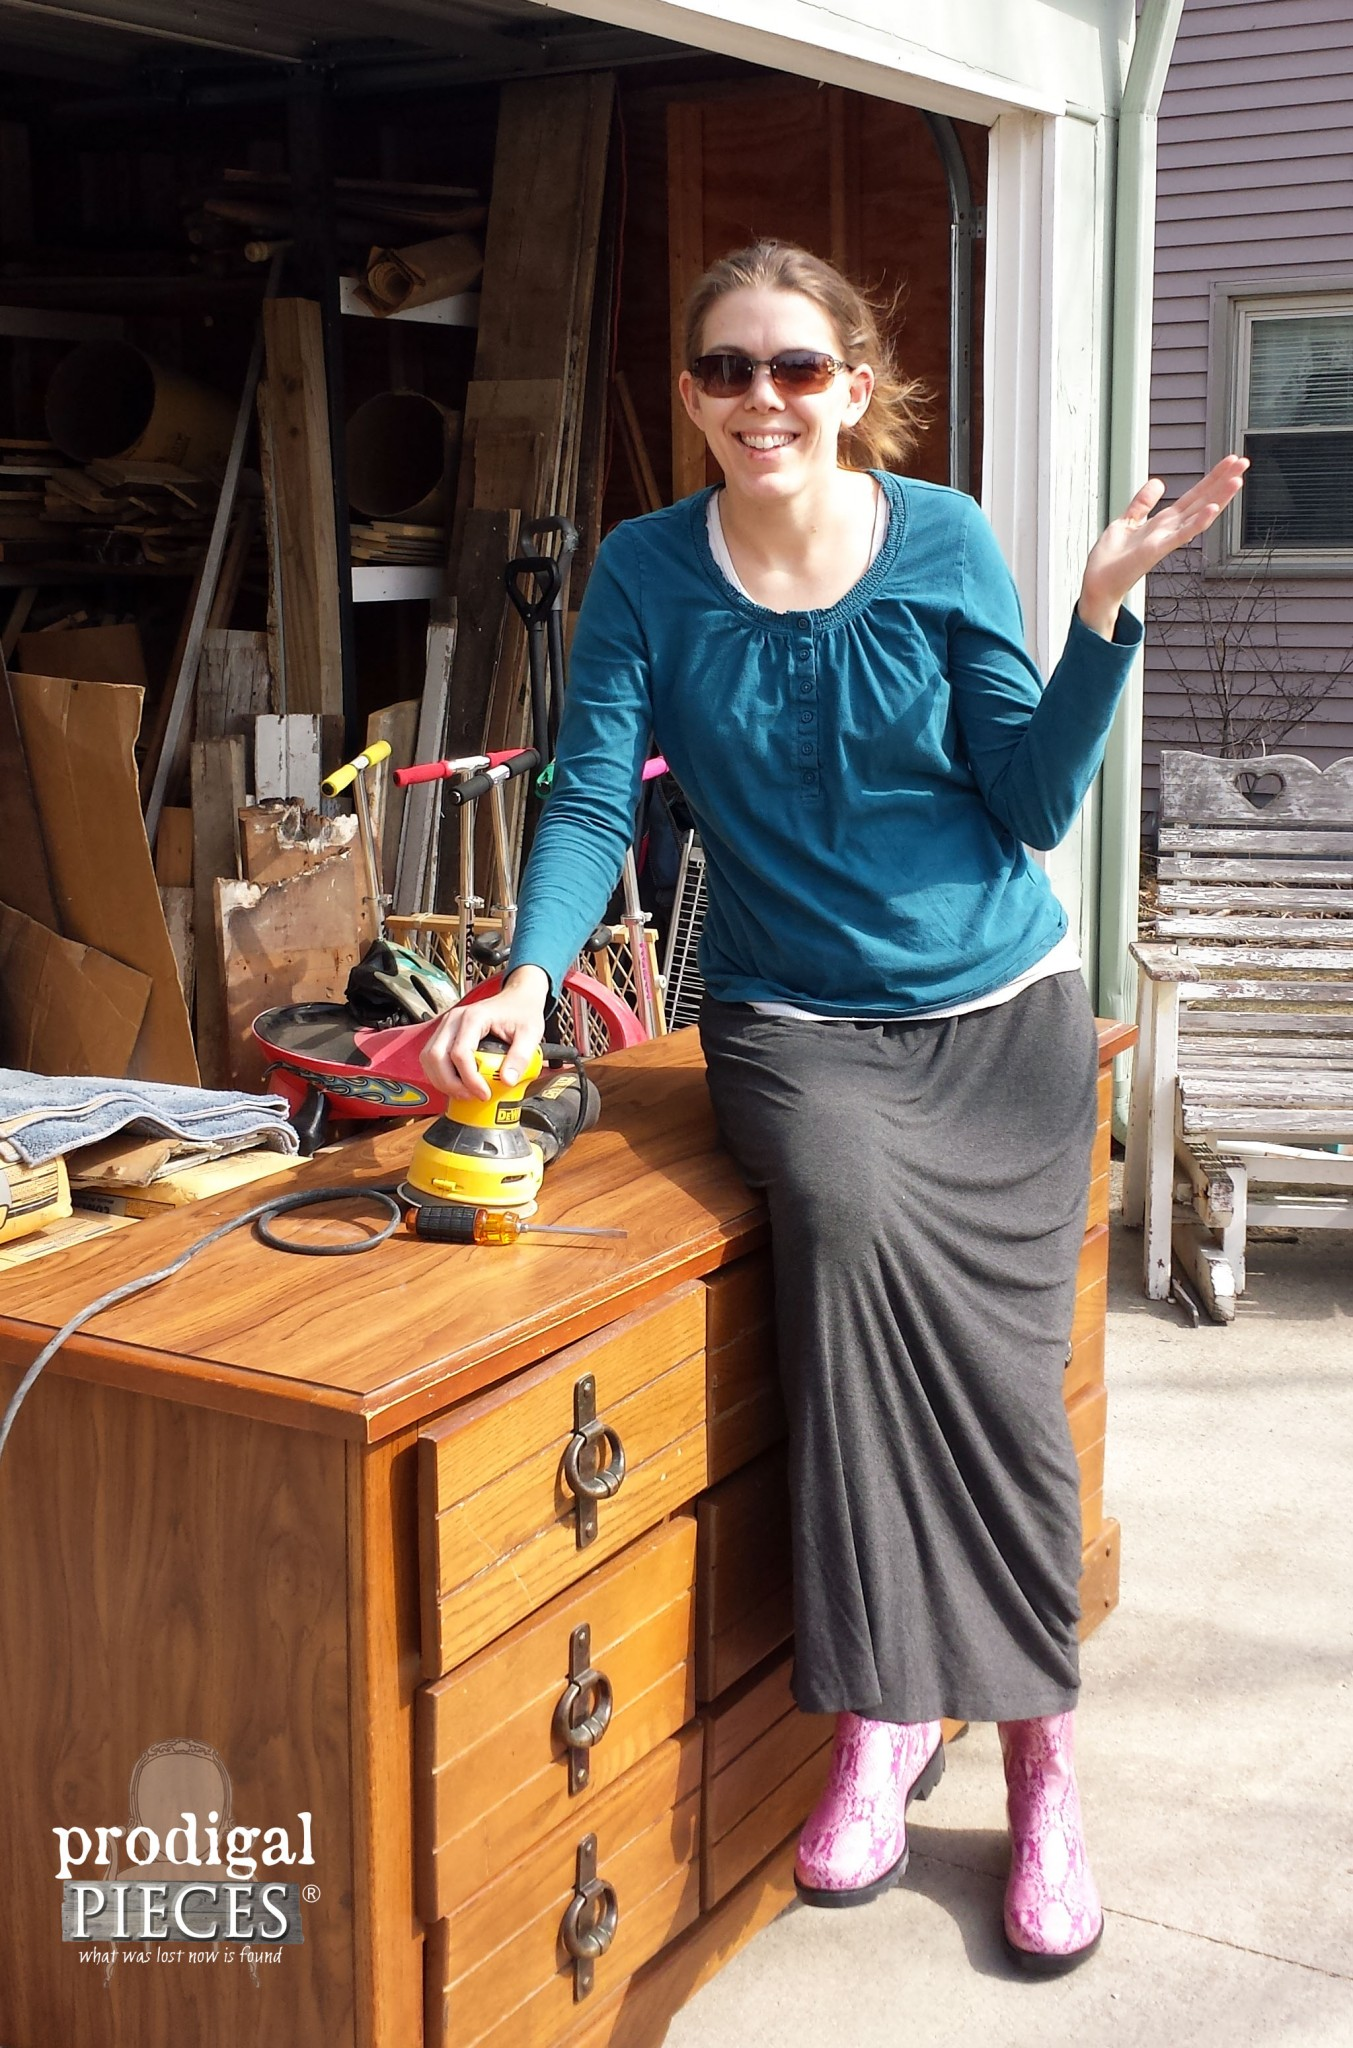 Sitting on Vintage Dresser for Updating | Prodigal Pieces | www.prodigalpieces.com